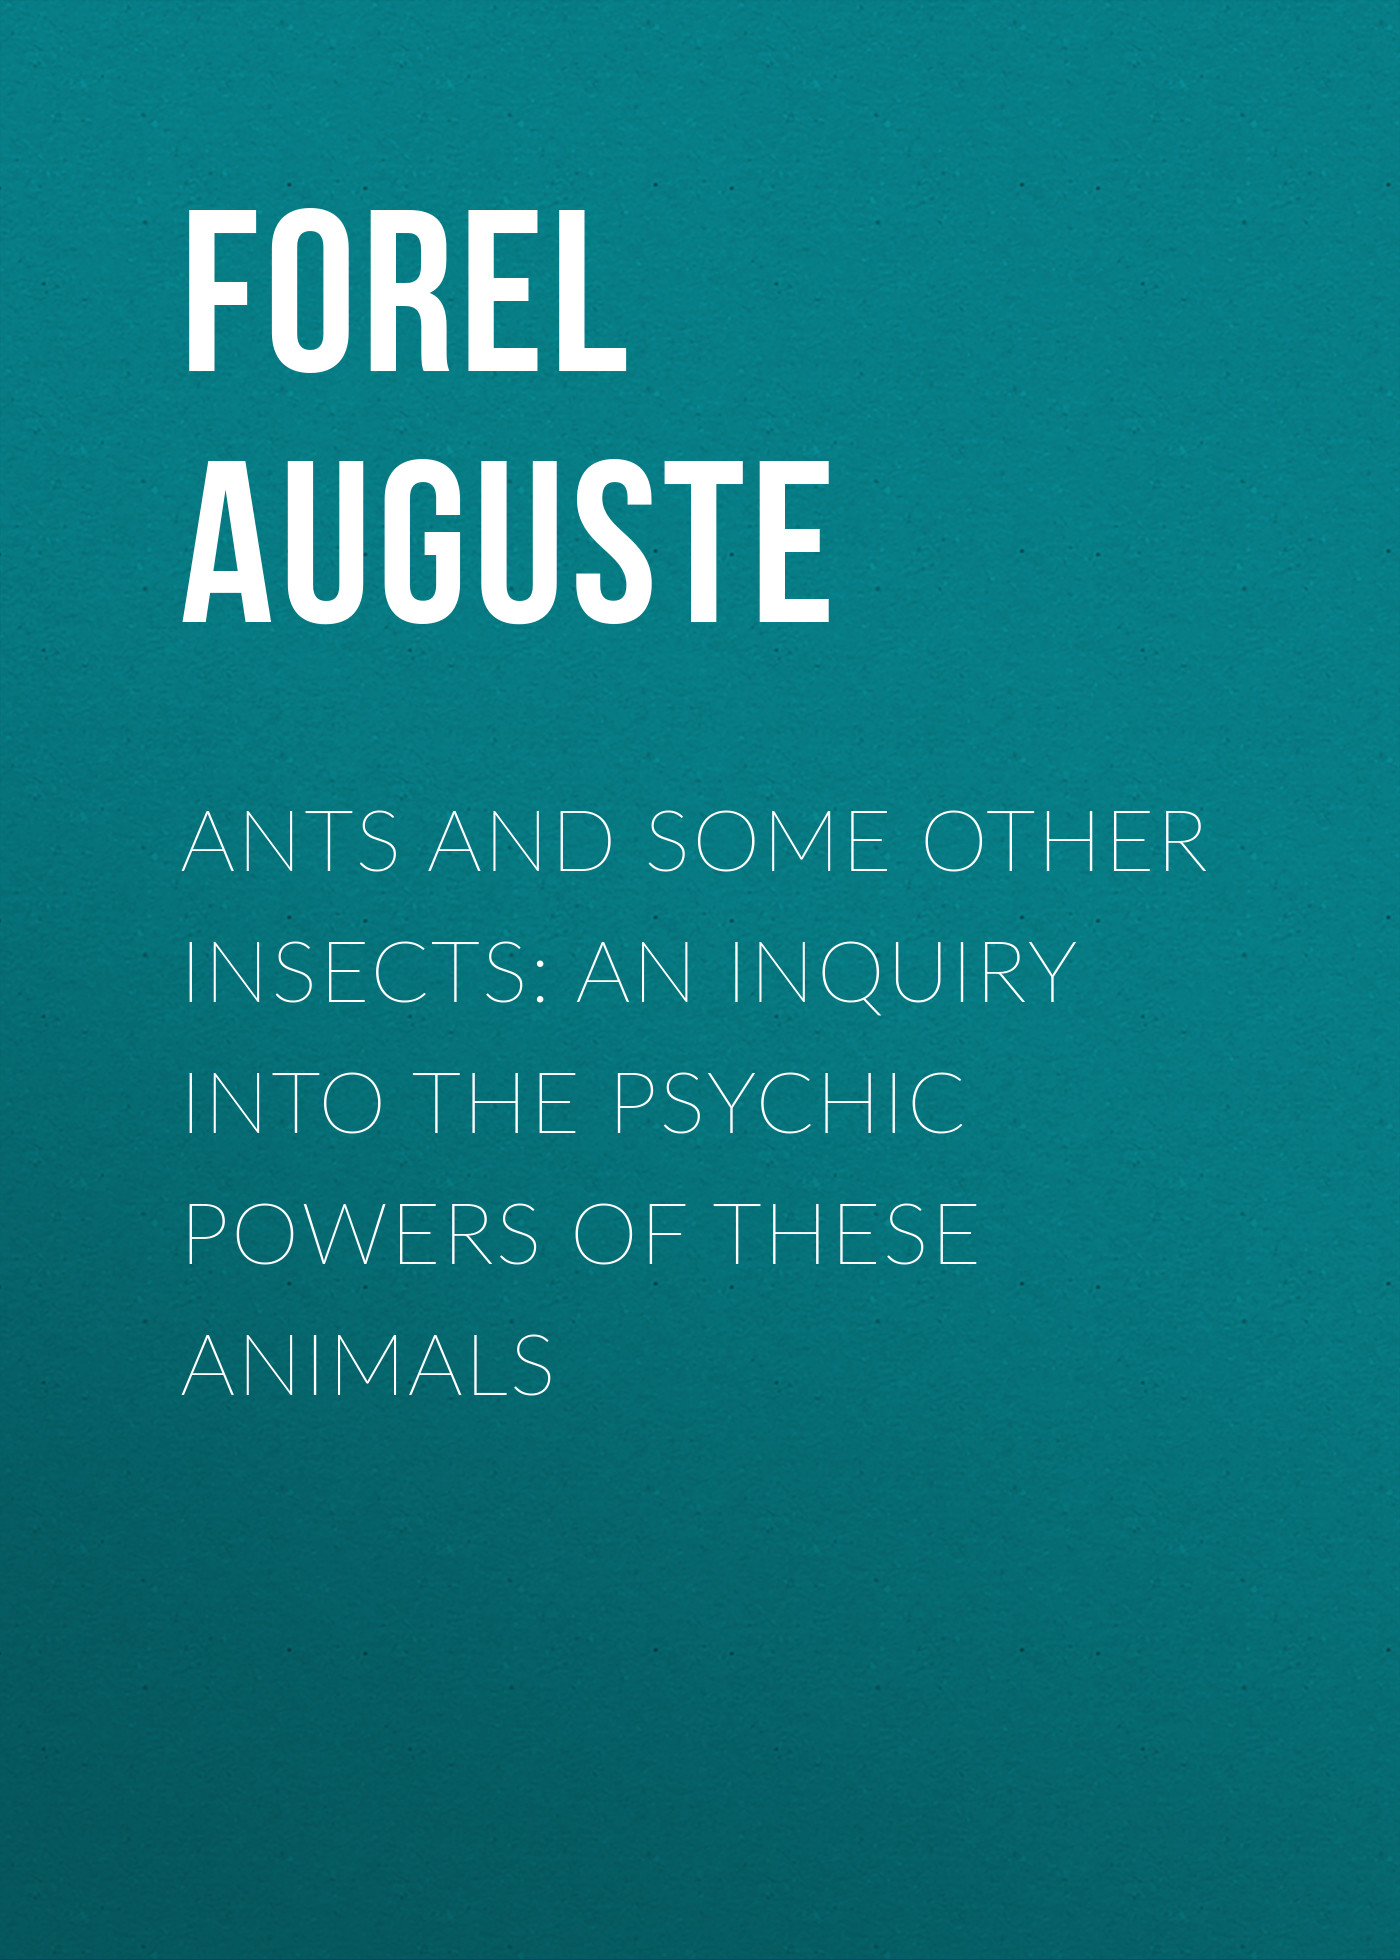 Forel Auguste Ants and Some Other Insects: An Inquiry Into the Psychic Powers of These Animals james maitland lauderdale an inquiry into the nature and origin of public wealth